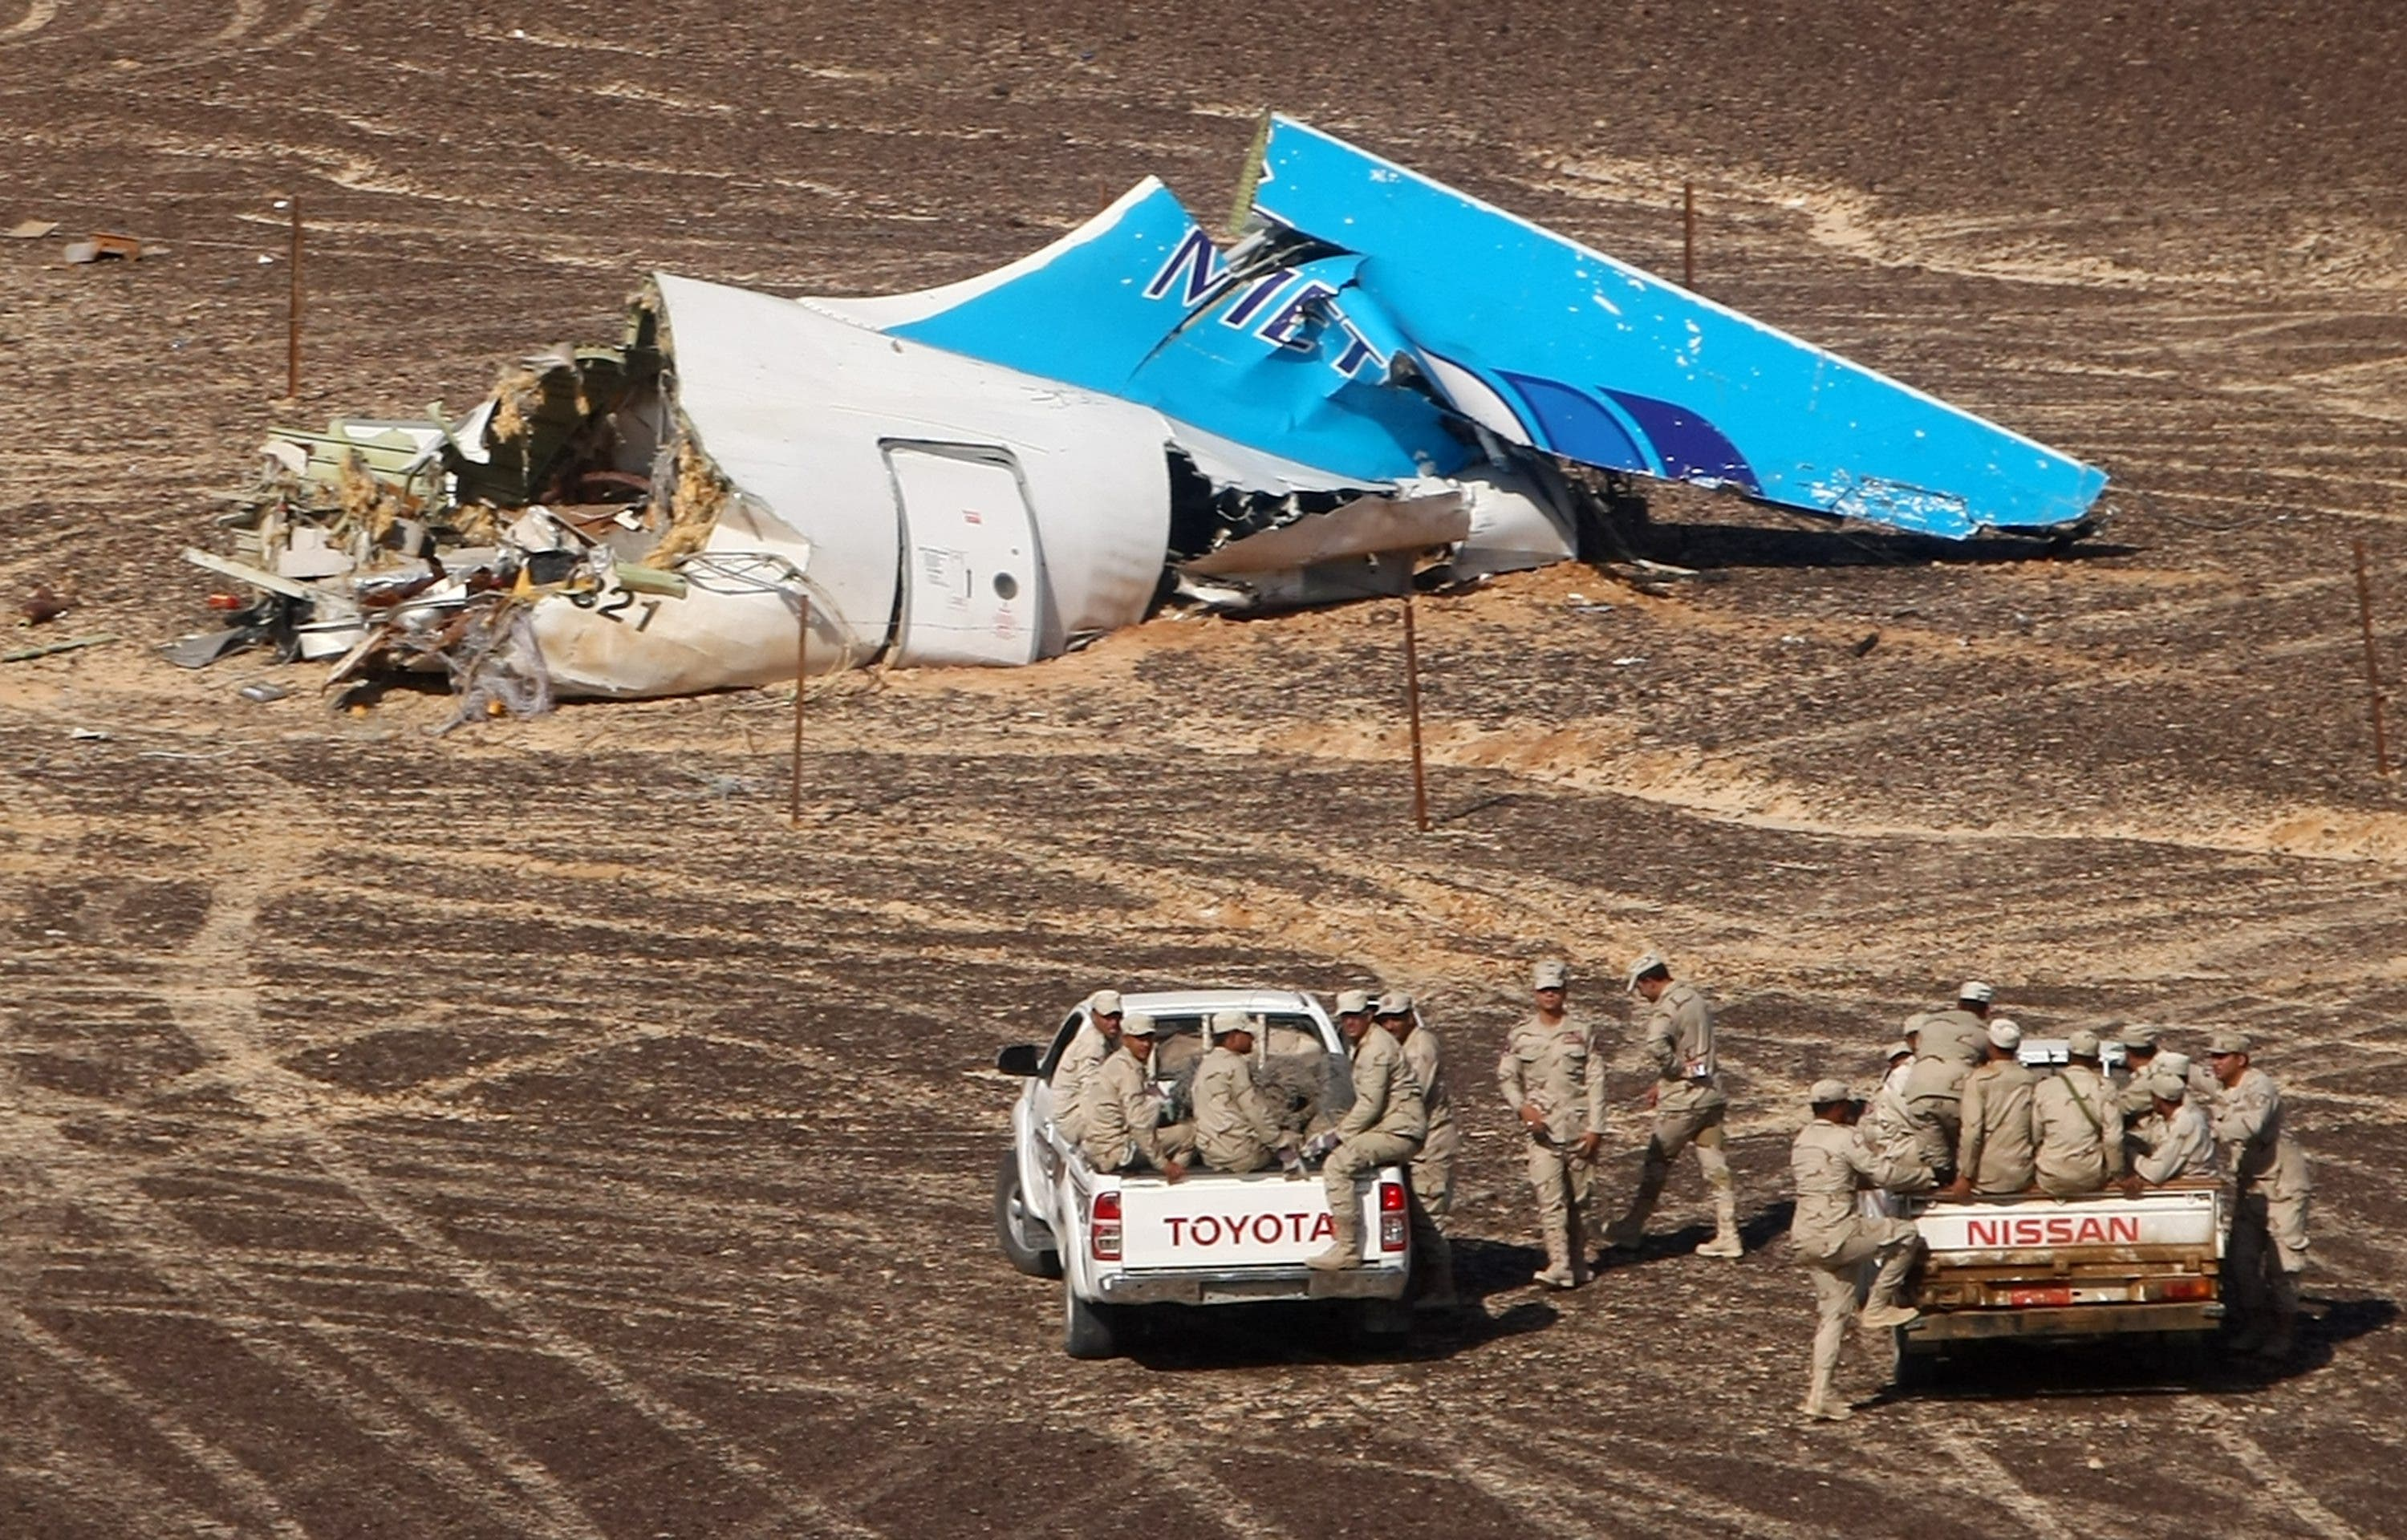 In this photo made available Monday, Nov. 2, 2015, and provided by Russian Emergency Situations Ministry, Egyptian Military on cars approach a plane's tail at the wreckage of a passenger jet bound for St. Petersburg in Russia that crashed in Hassana, Egypt, on Sunday, Nov. 1, 2015.